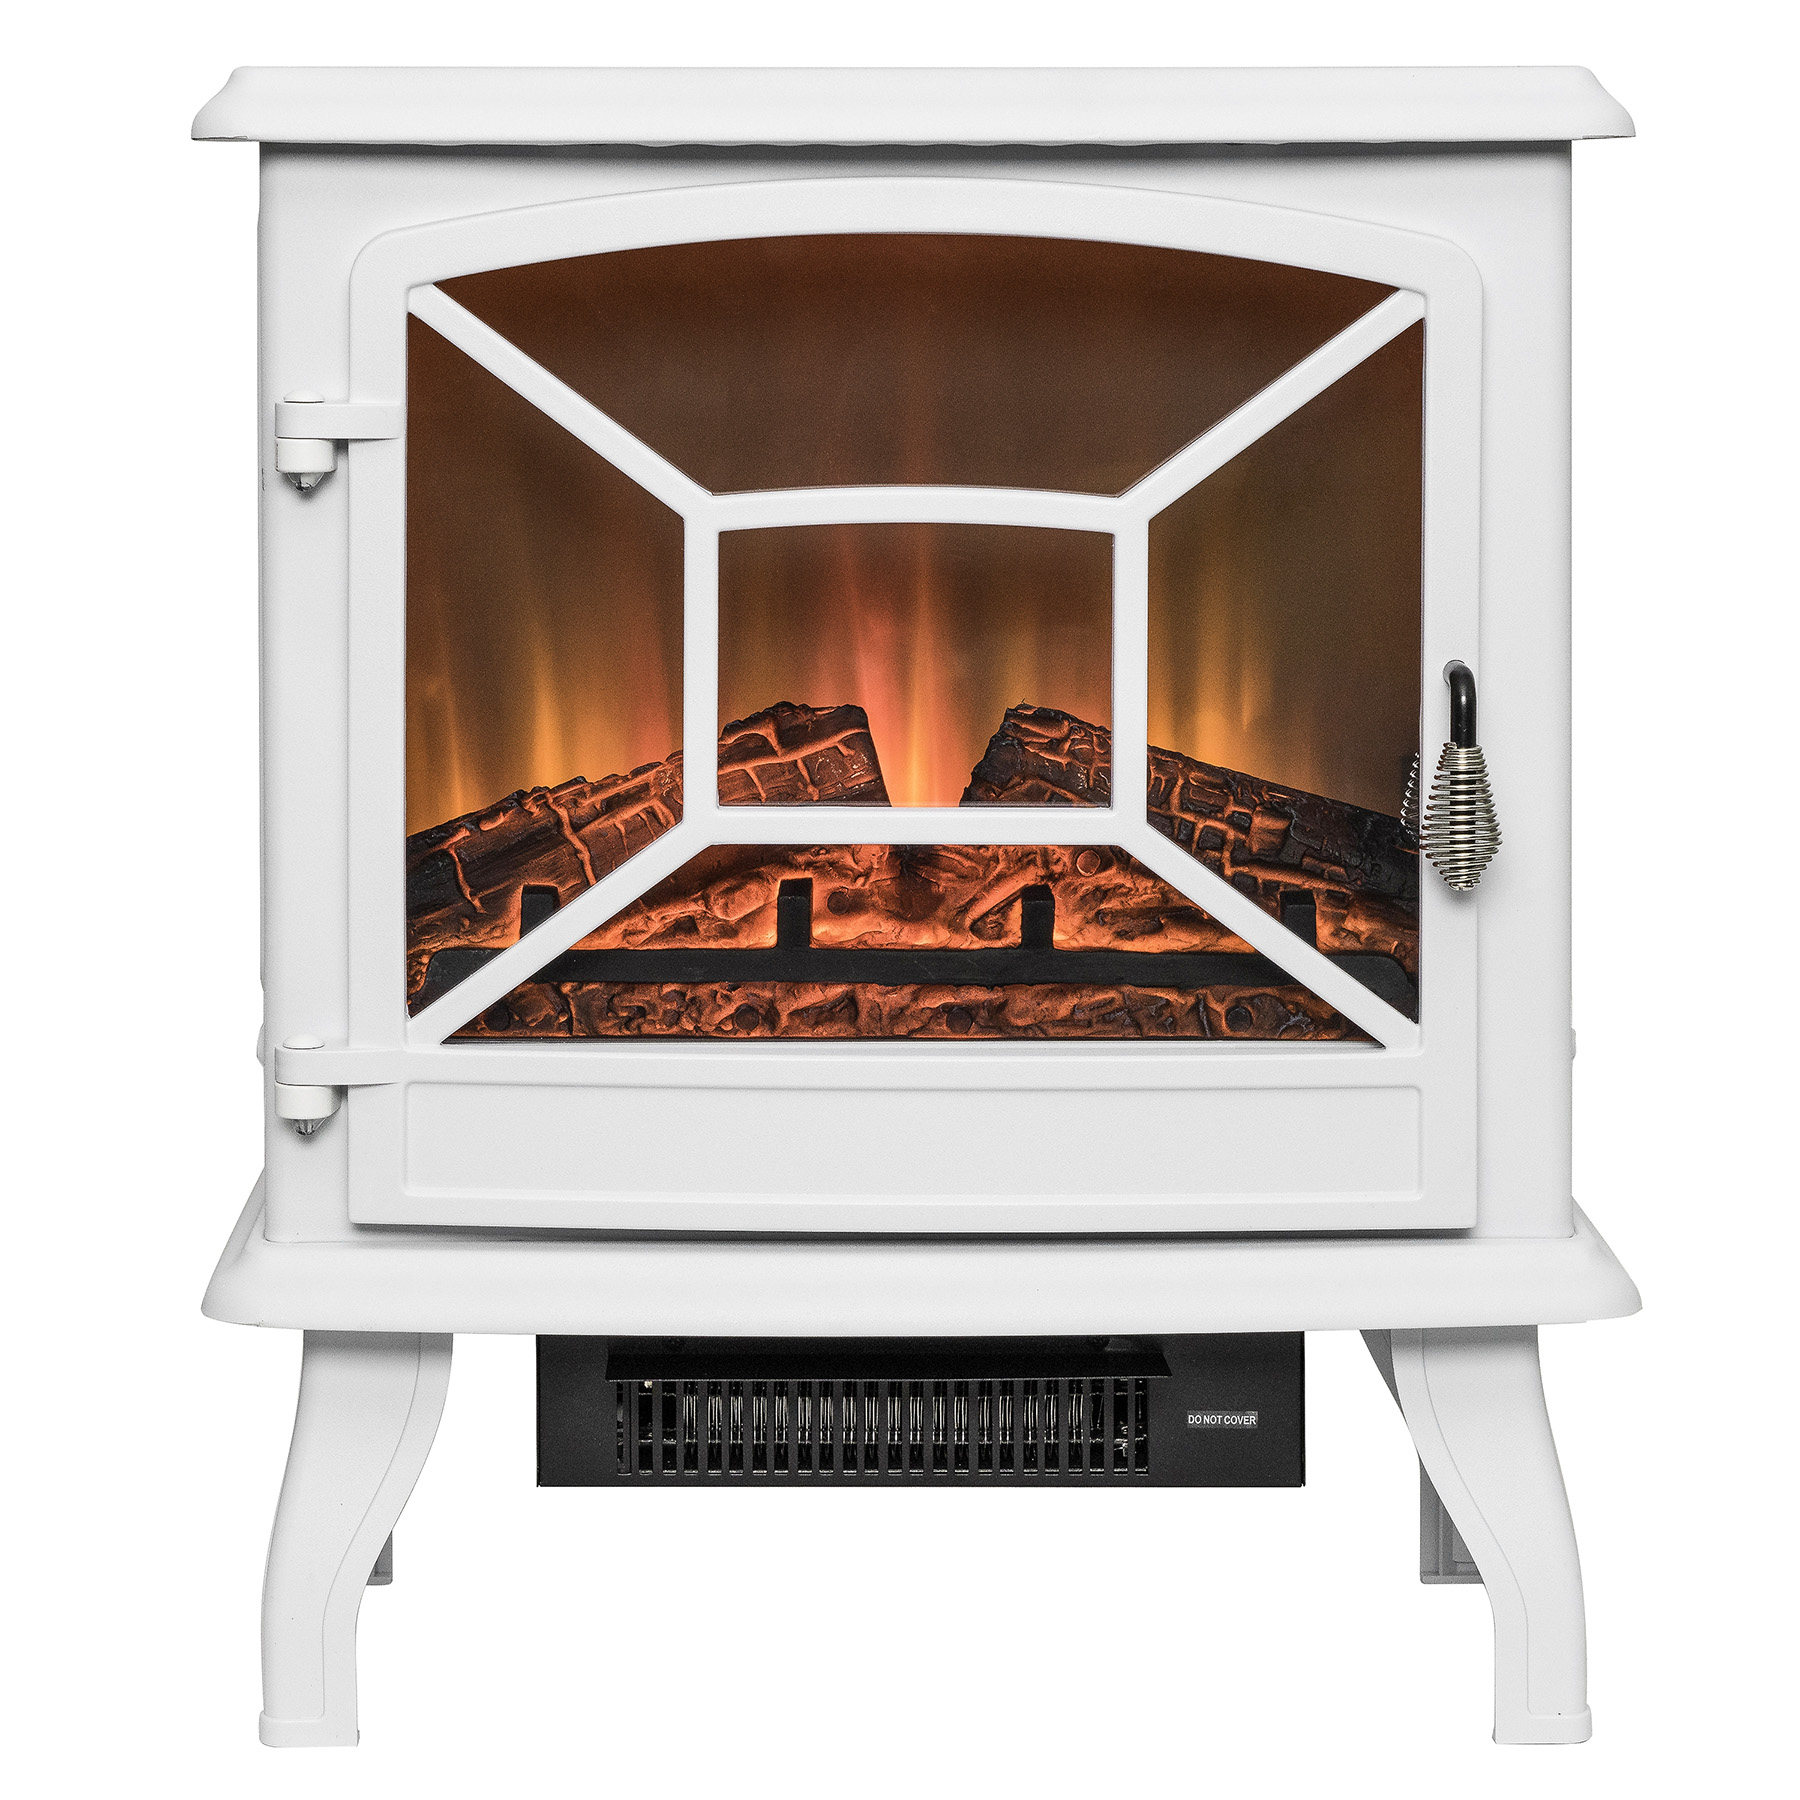 "AKDY FP0083 20"" White Freestanding Portable Electric Fireplace Firebox Heater Flames... by AKDY"